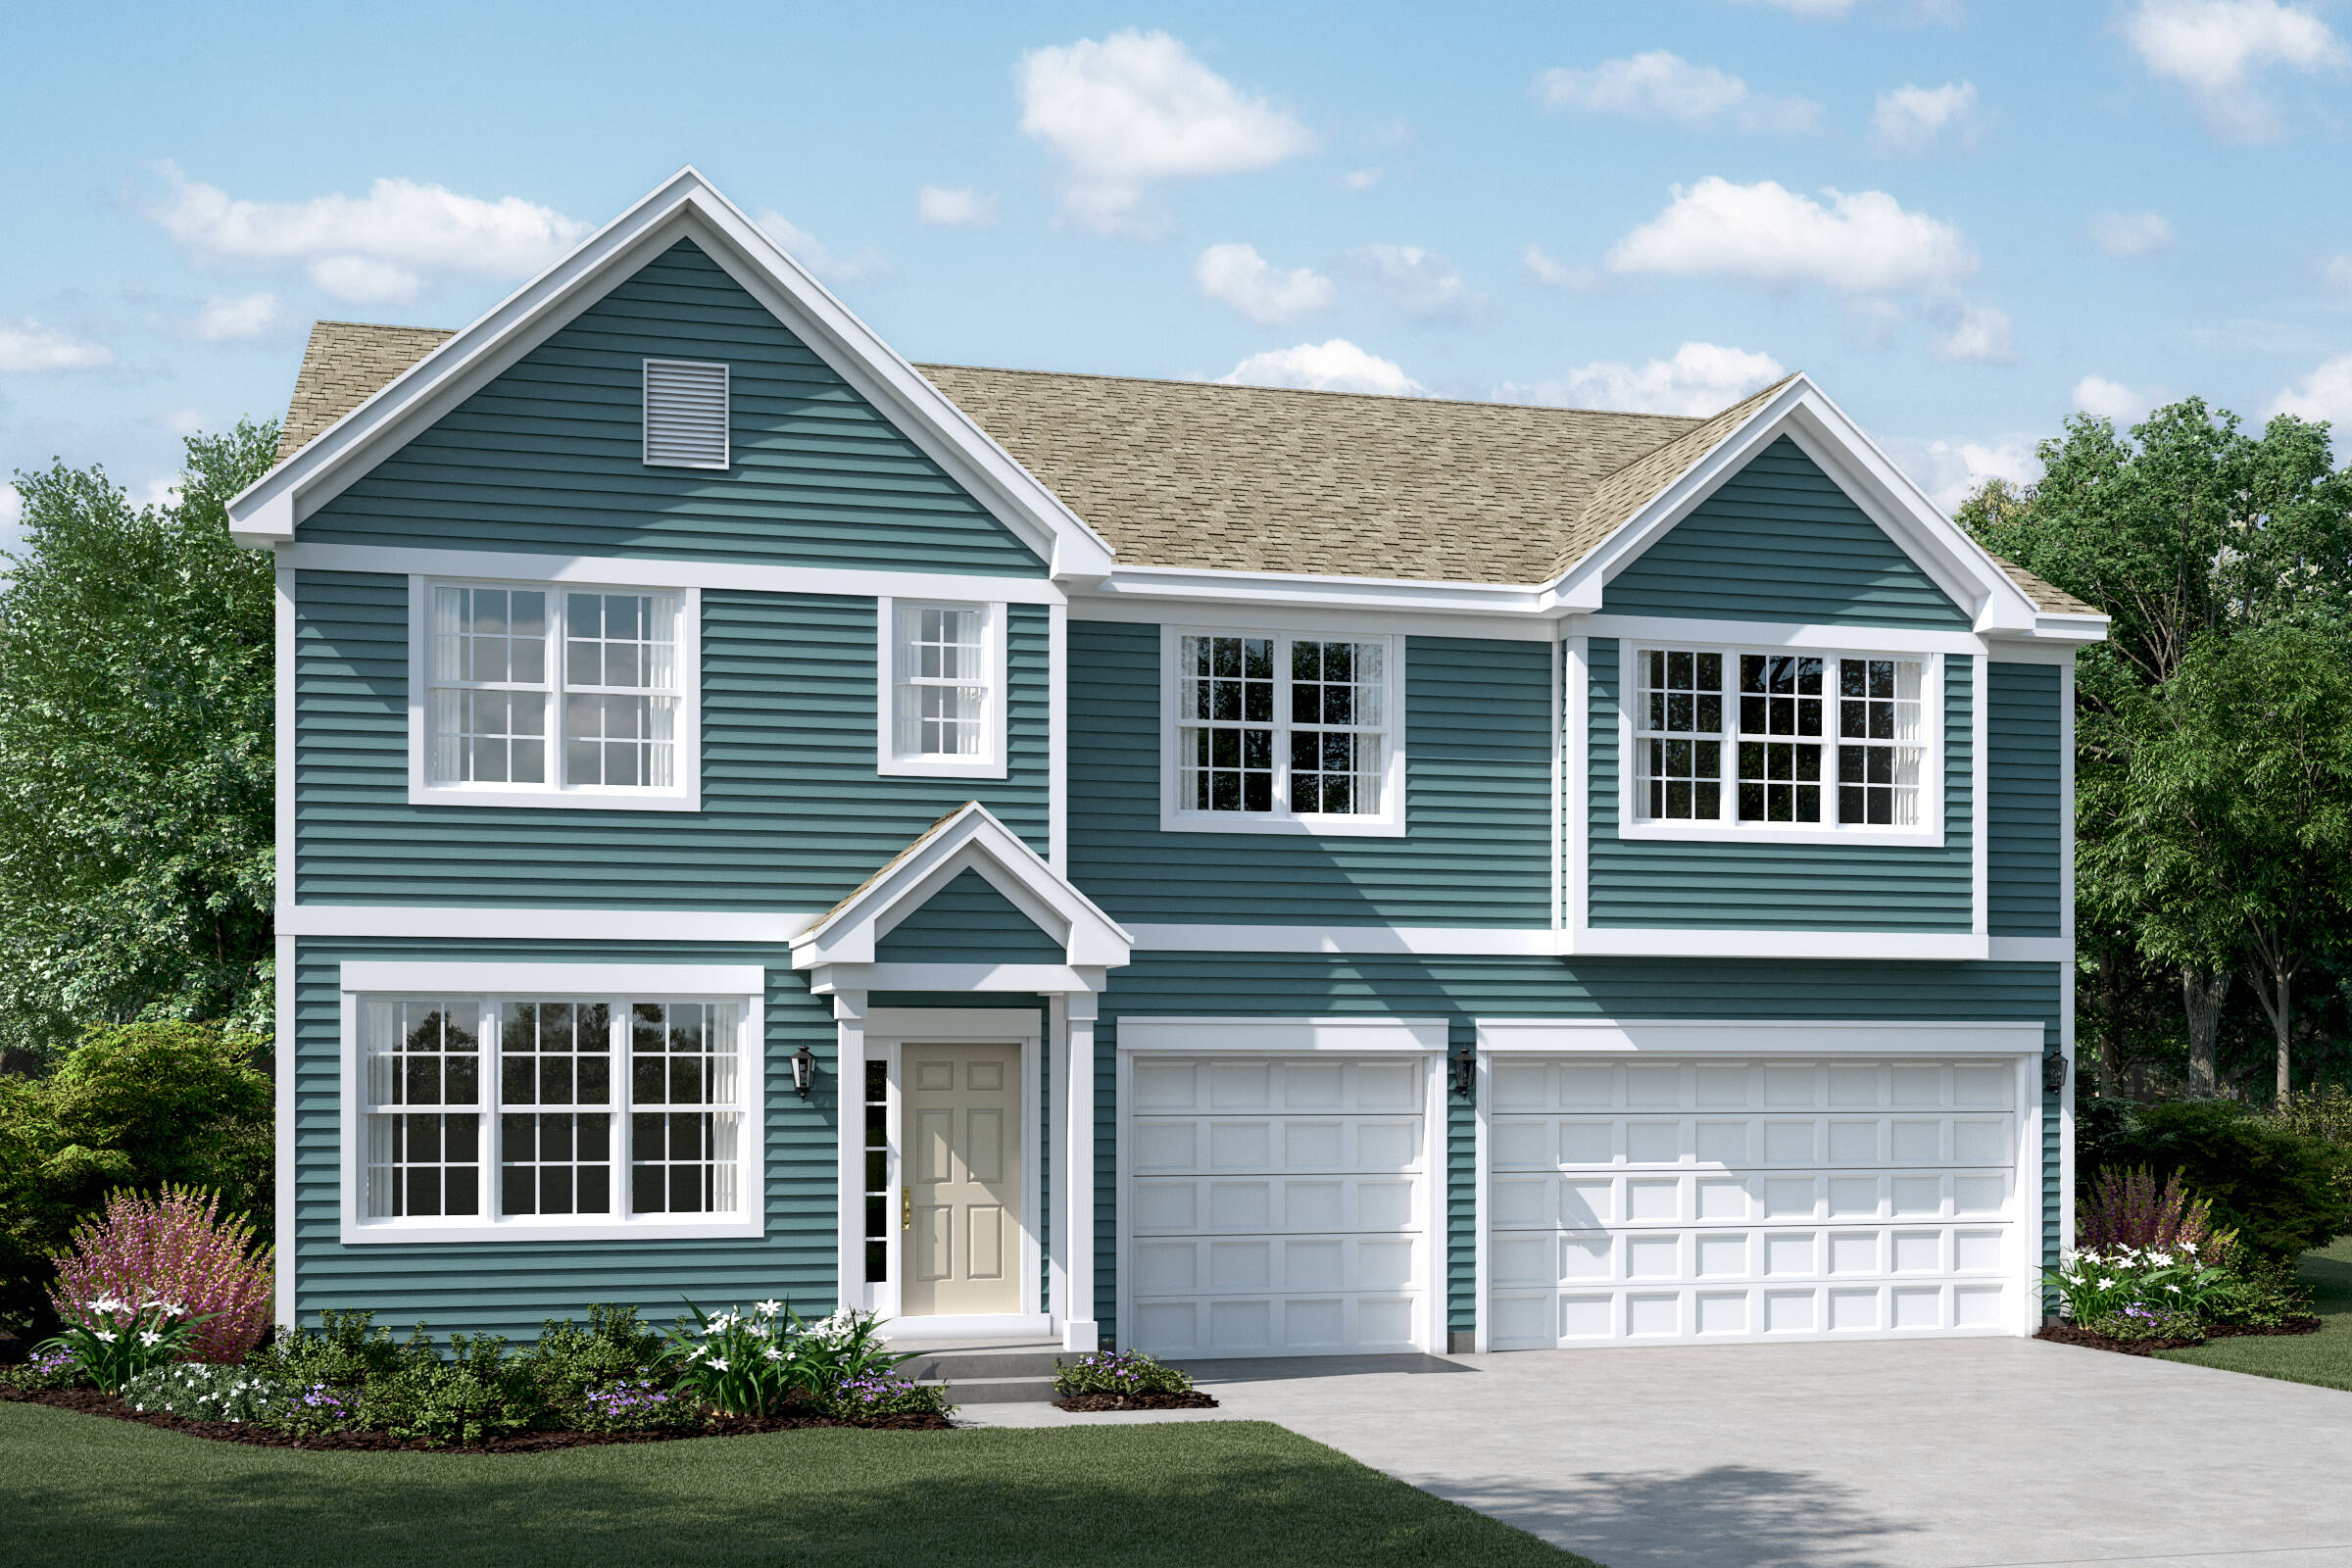 yorkshire f sagebrook single family homes in south elgin